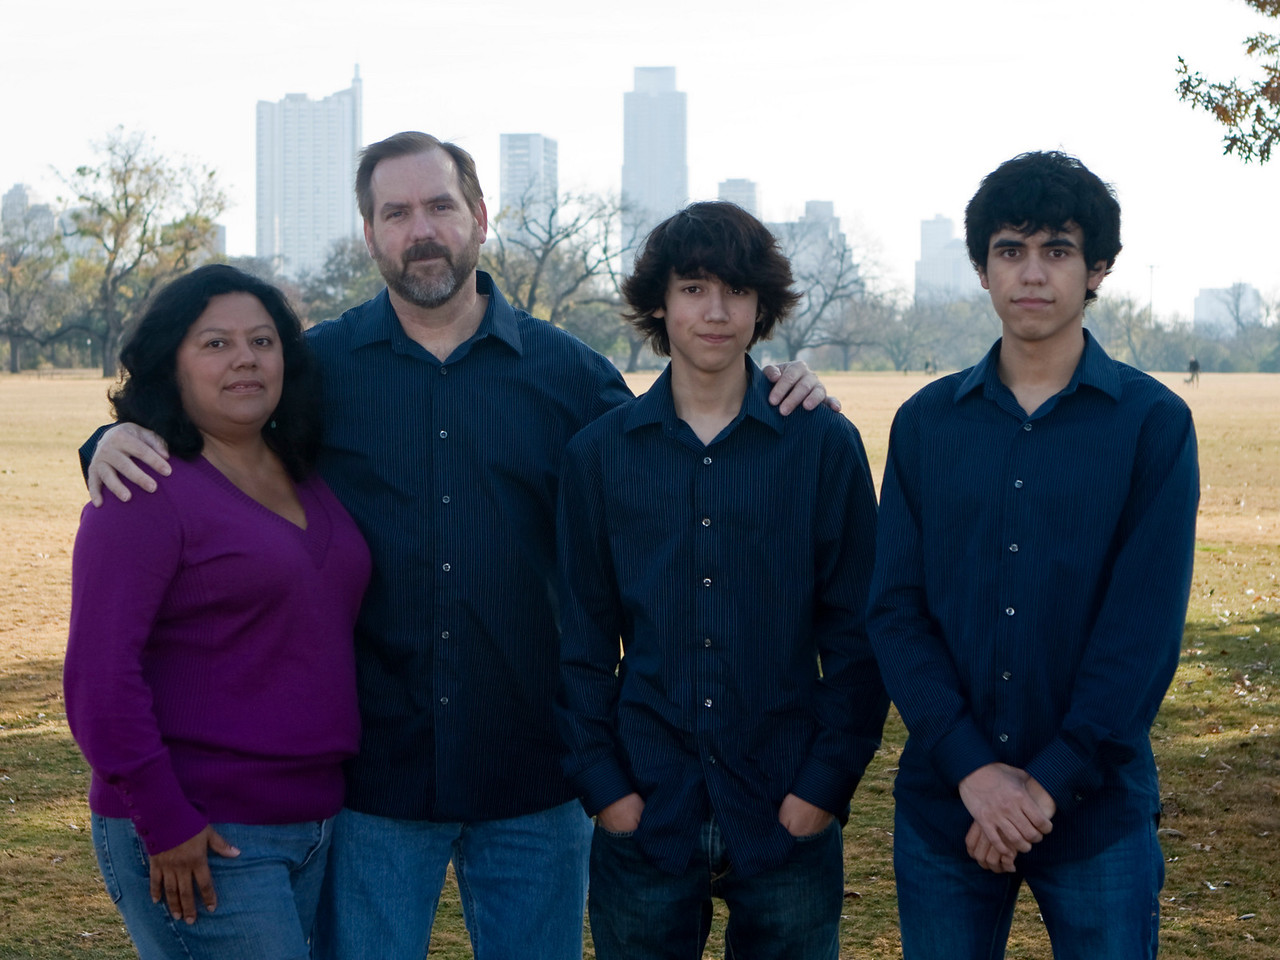 Gibbens family Christmas photos, Dec 2010, Zilker Park.  Taken by Milton Otton.